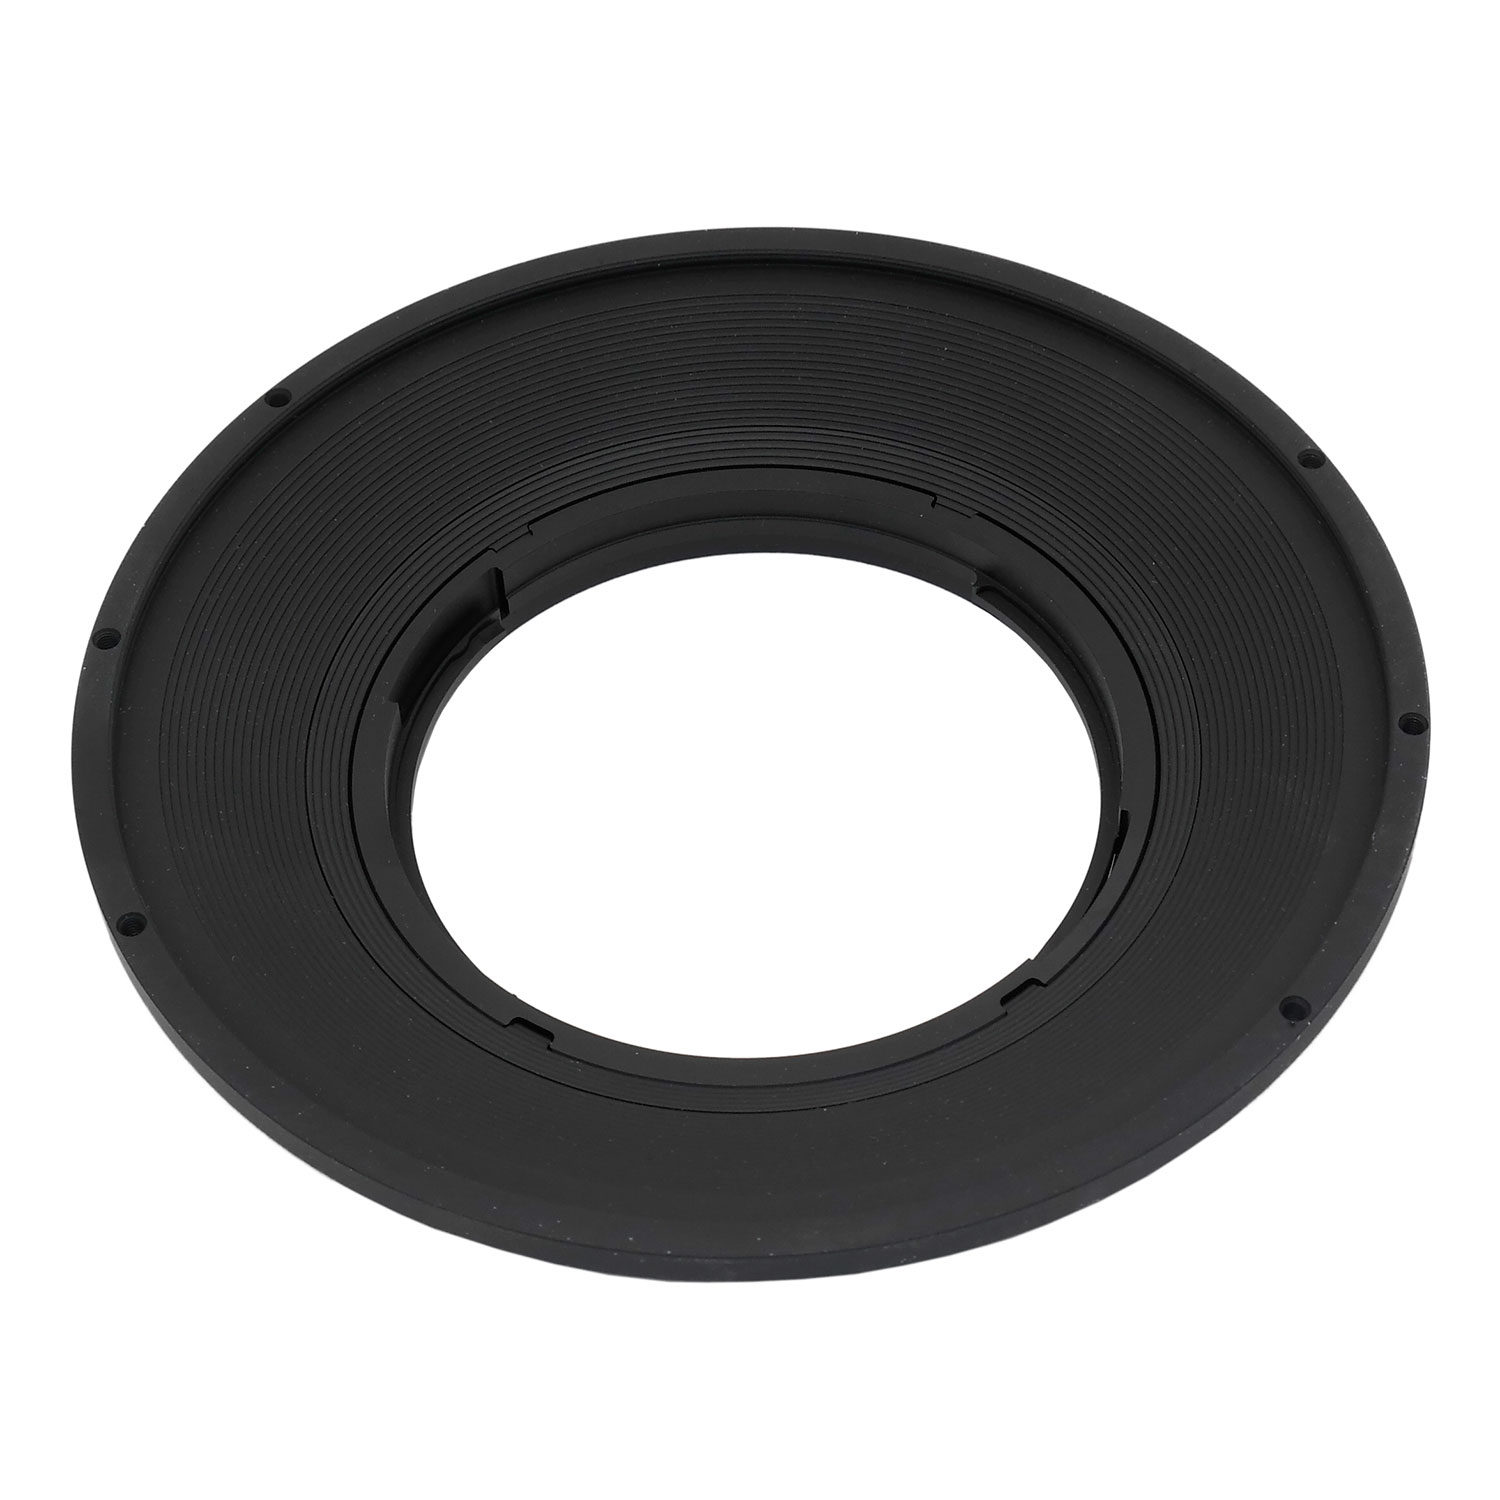 Foto van Athabasca Filter Adapter System voor Canon 17mm TS-E